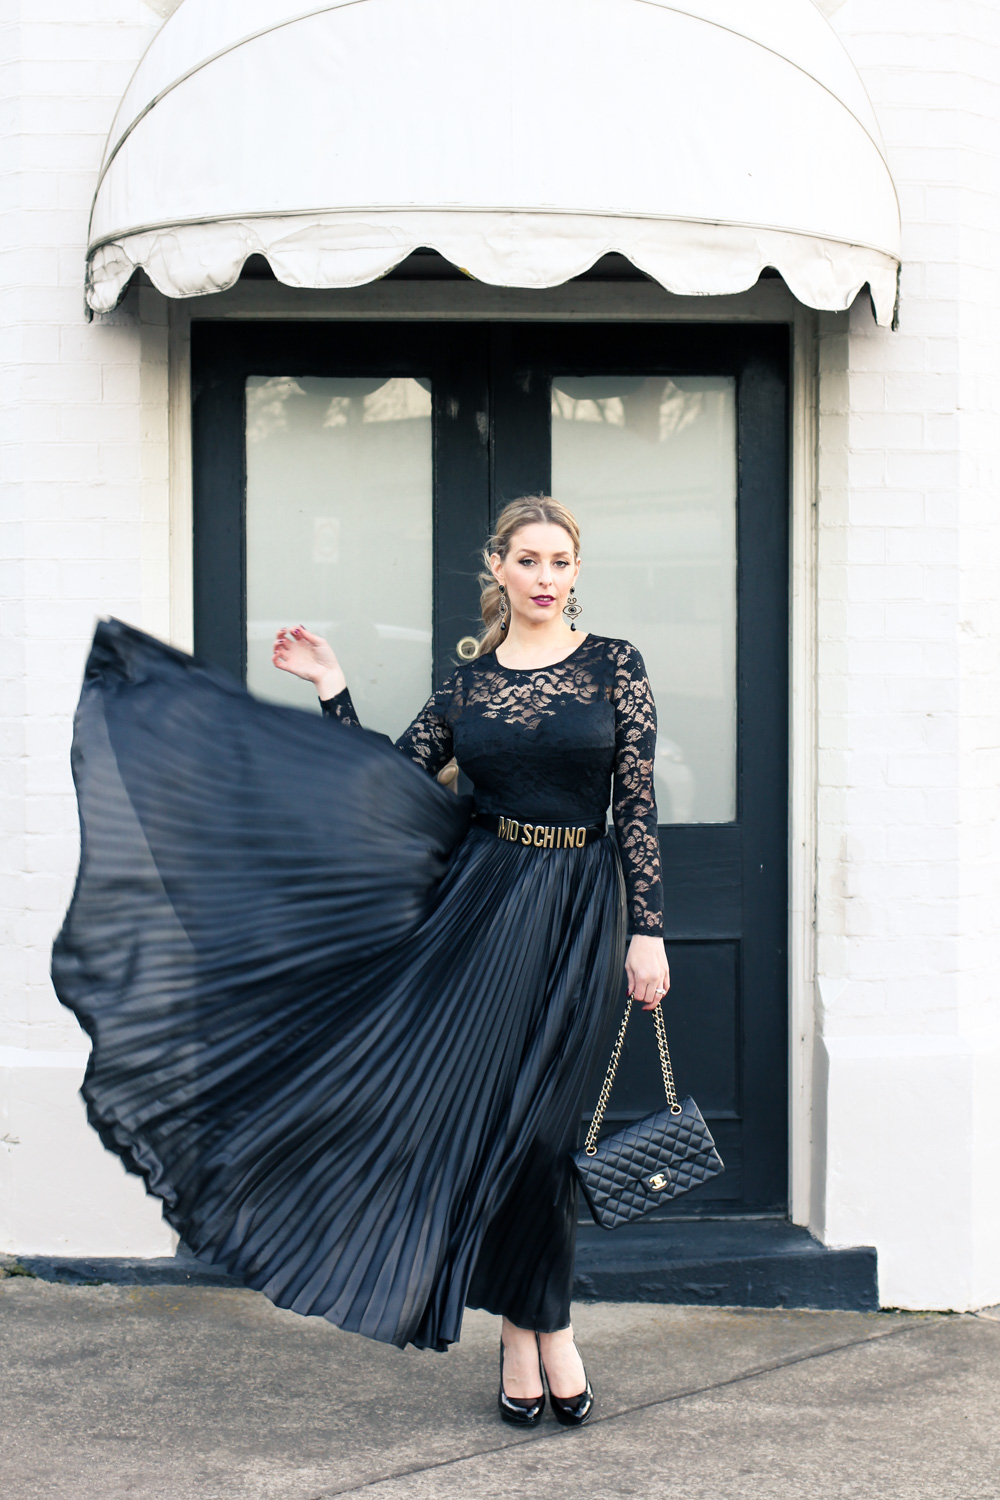 Goldfields Girl styling all black pleated maxi skirt, Moschino belt and Chanel bag